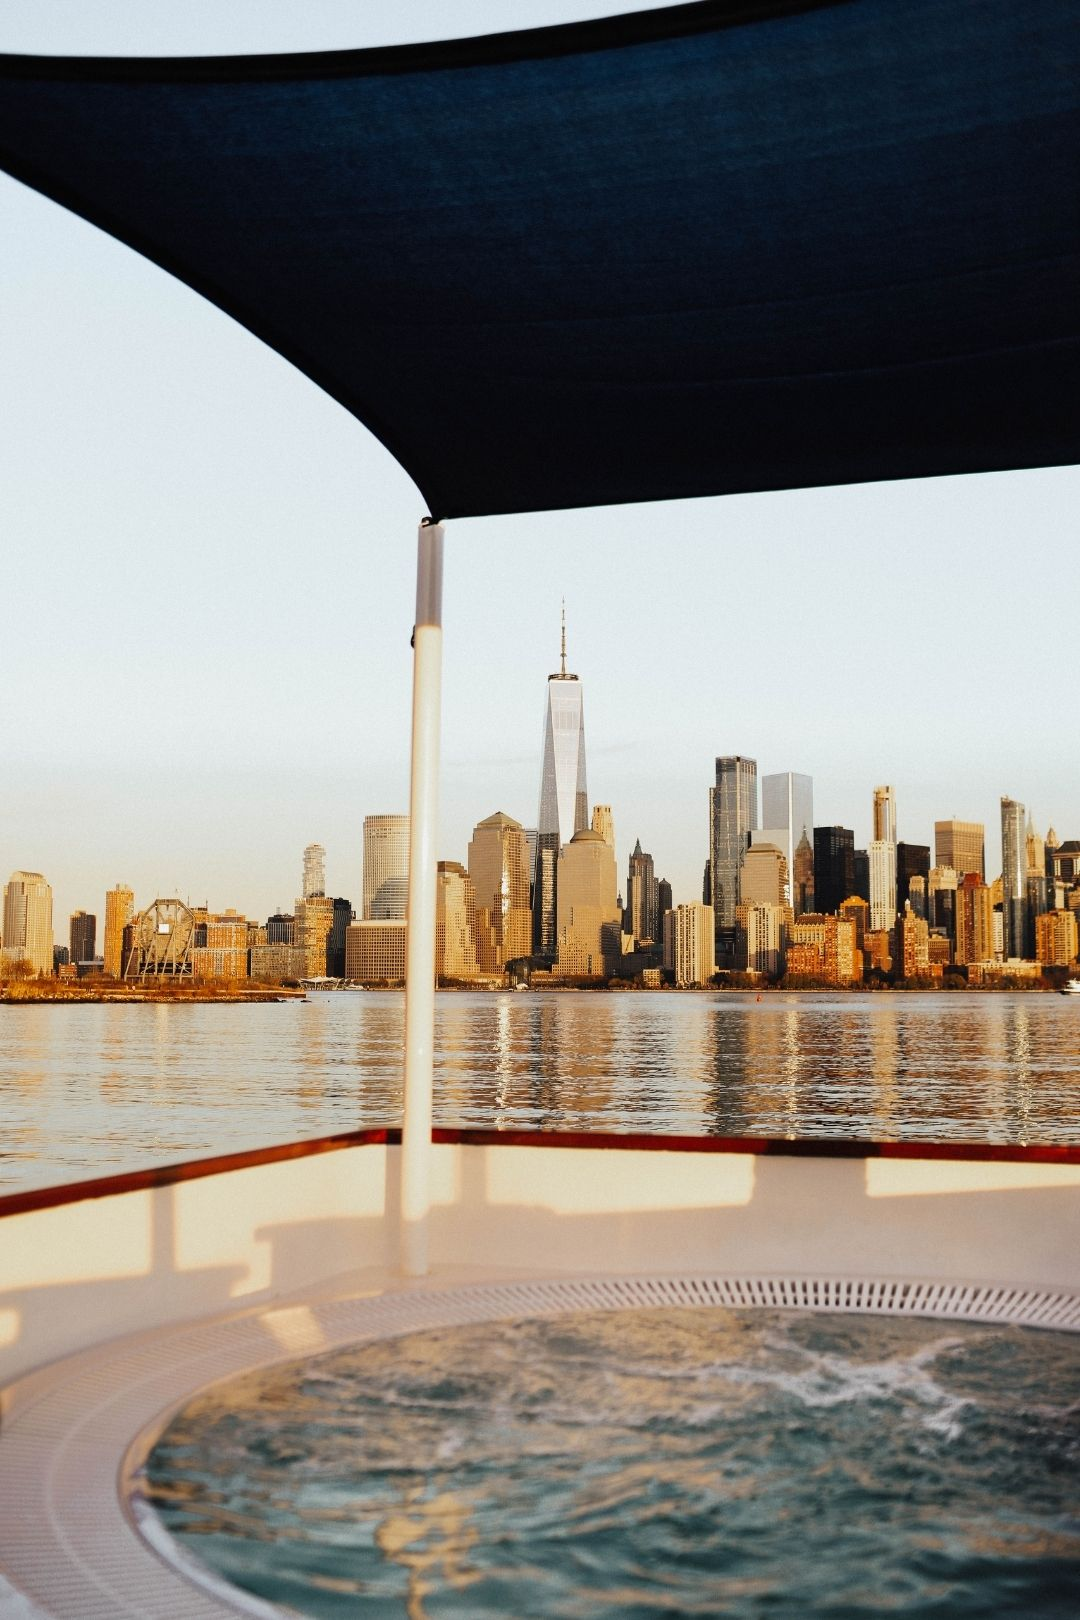 NYC Hot Tub Boat Cruise Giveaway